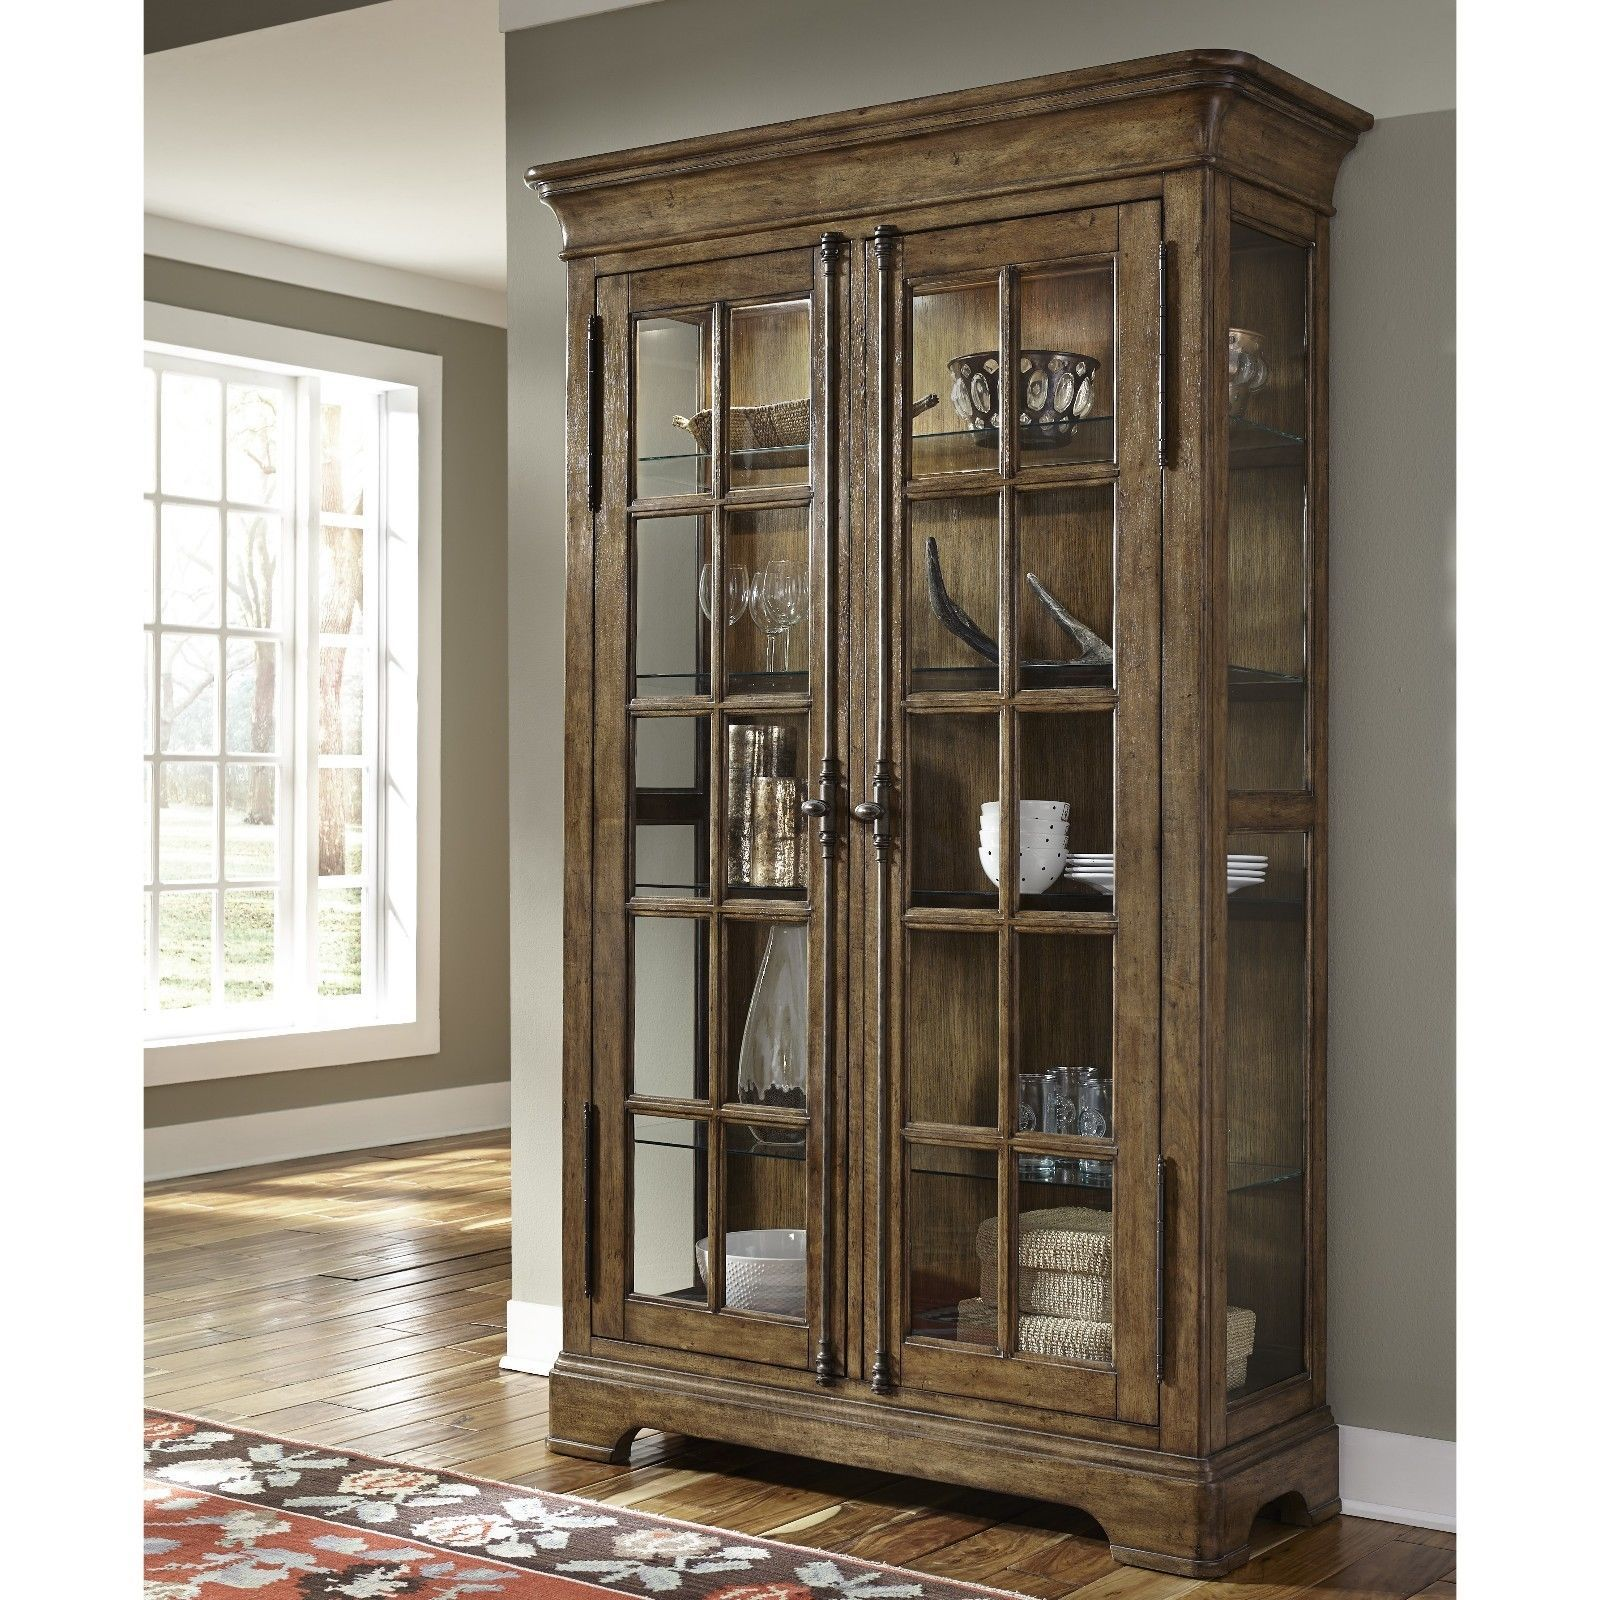 Lighted curio lighted curio case curio storage case display cabinet rustic furniture china cabinet trophy display